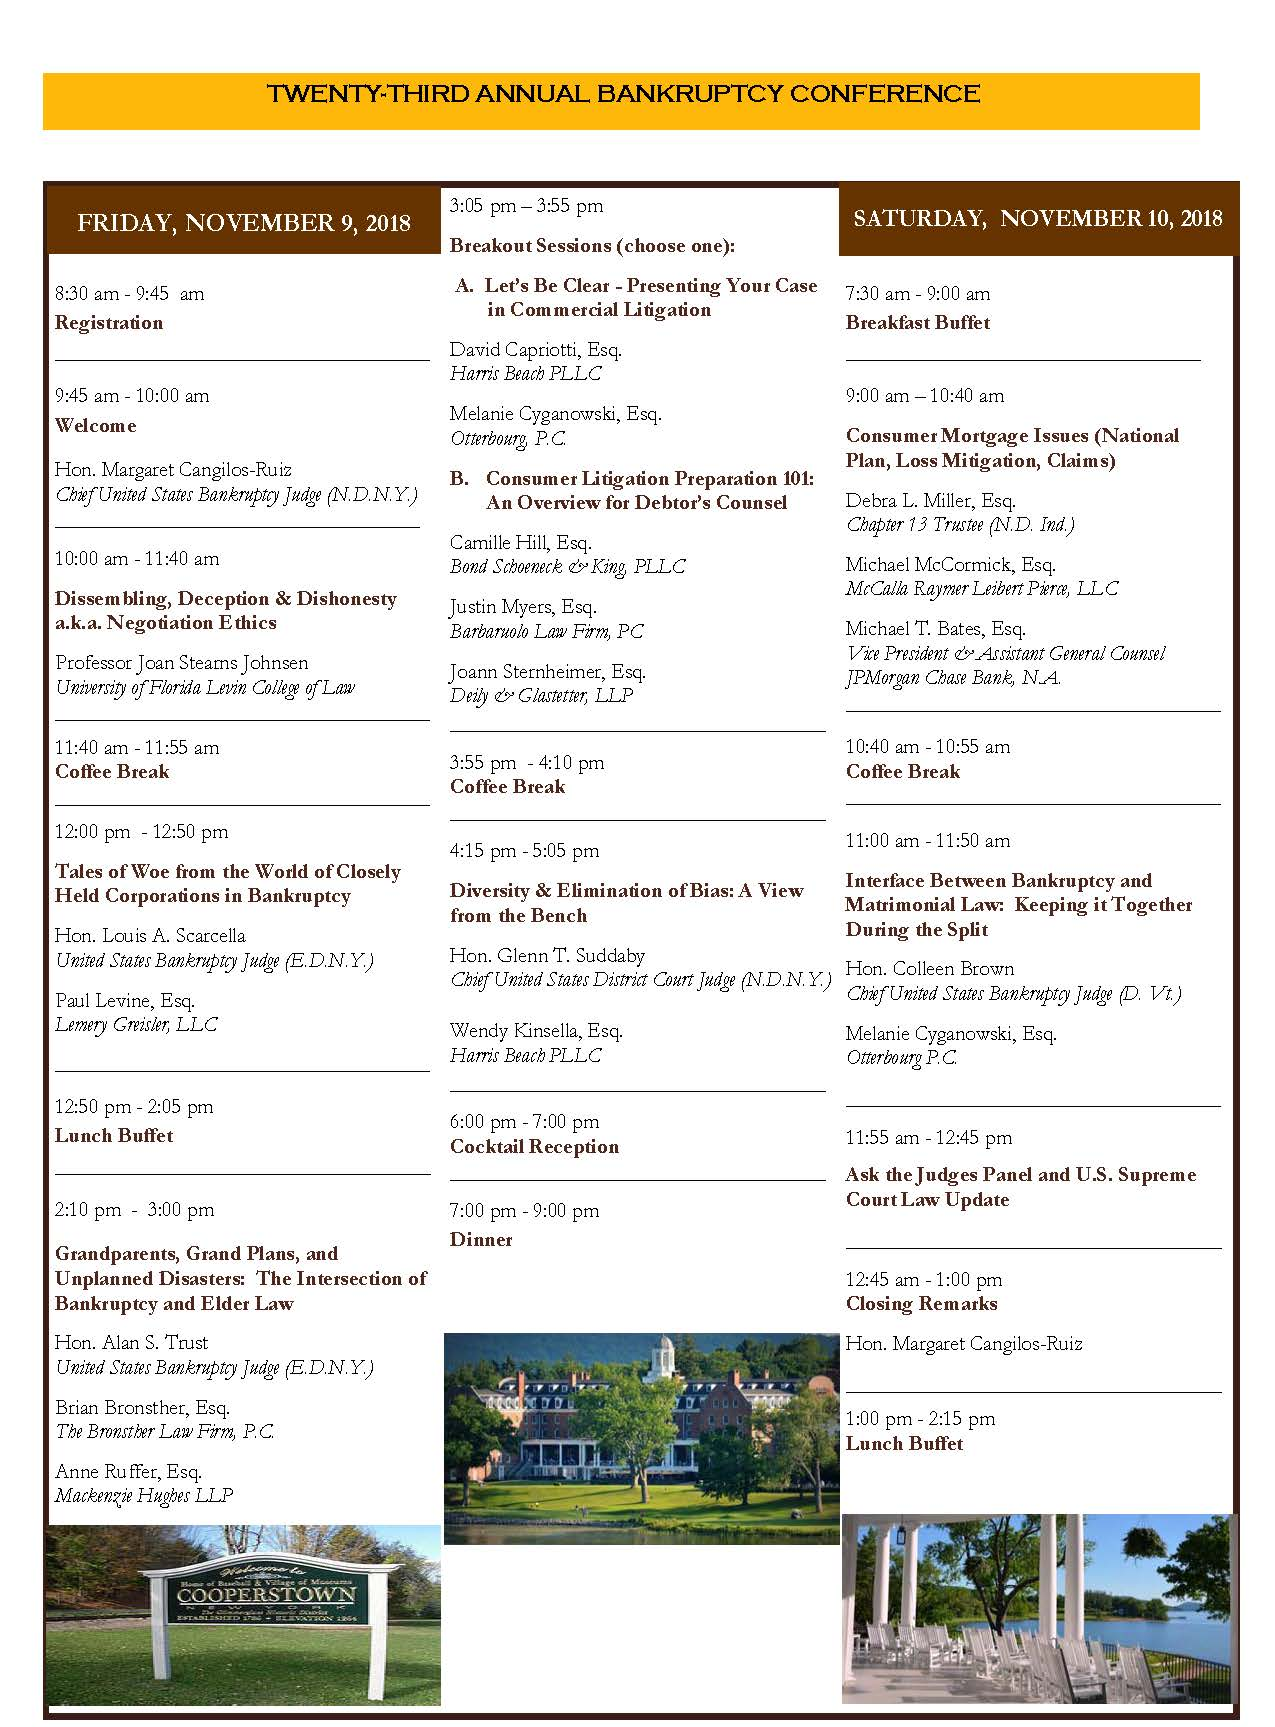 Final 2018 Conference Brochure (00278606xC66EC) (002)_Page_5.jpg